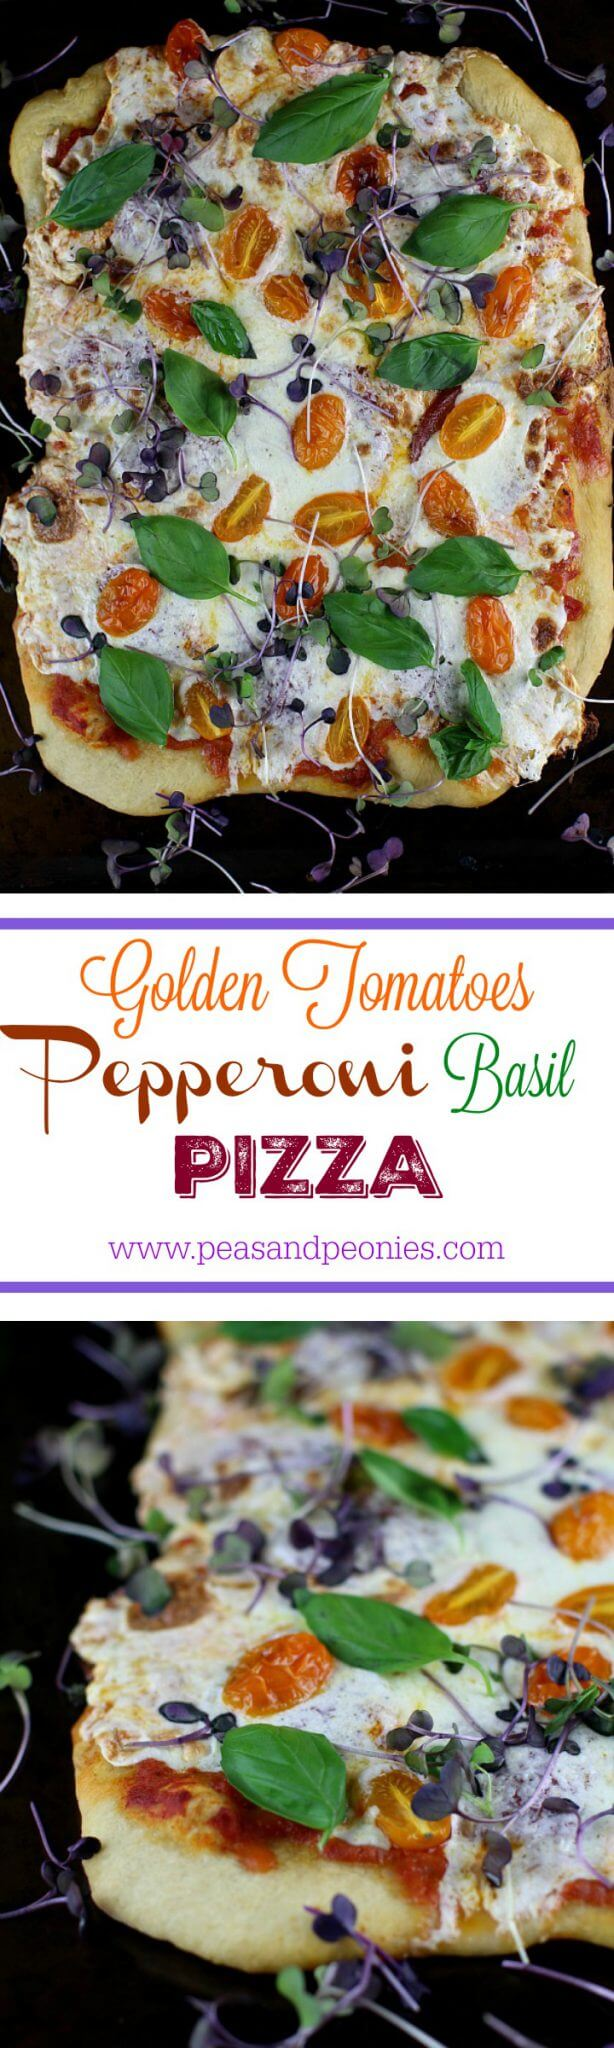 golden tomatoes pepperoni pizza